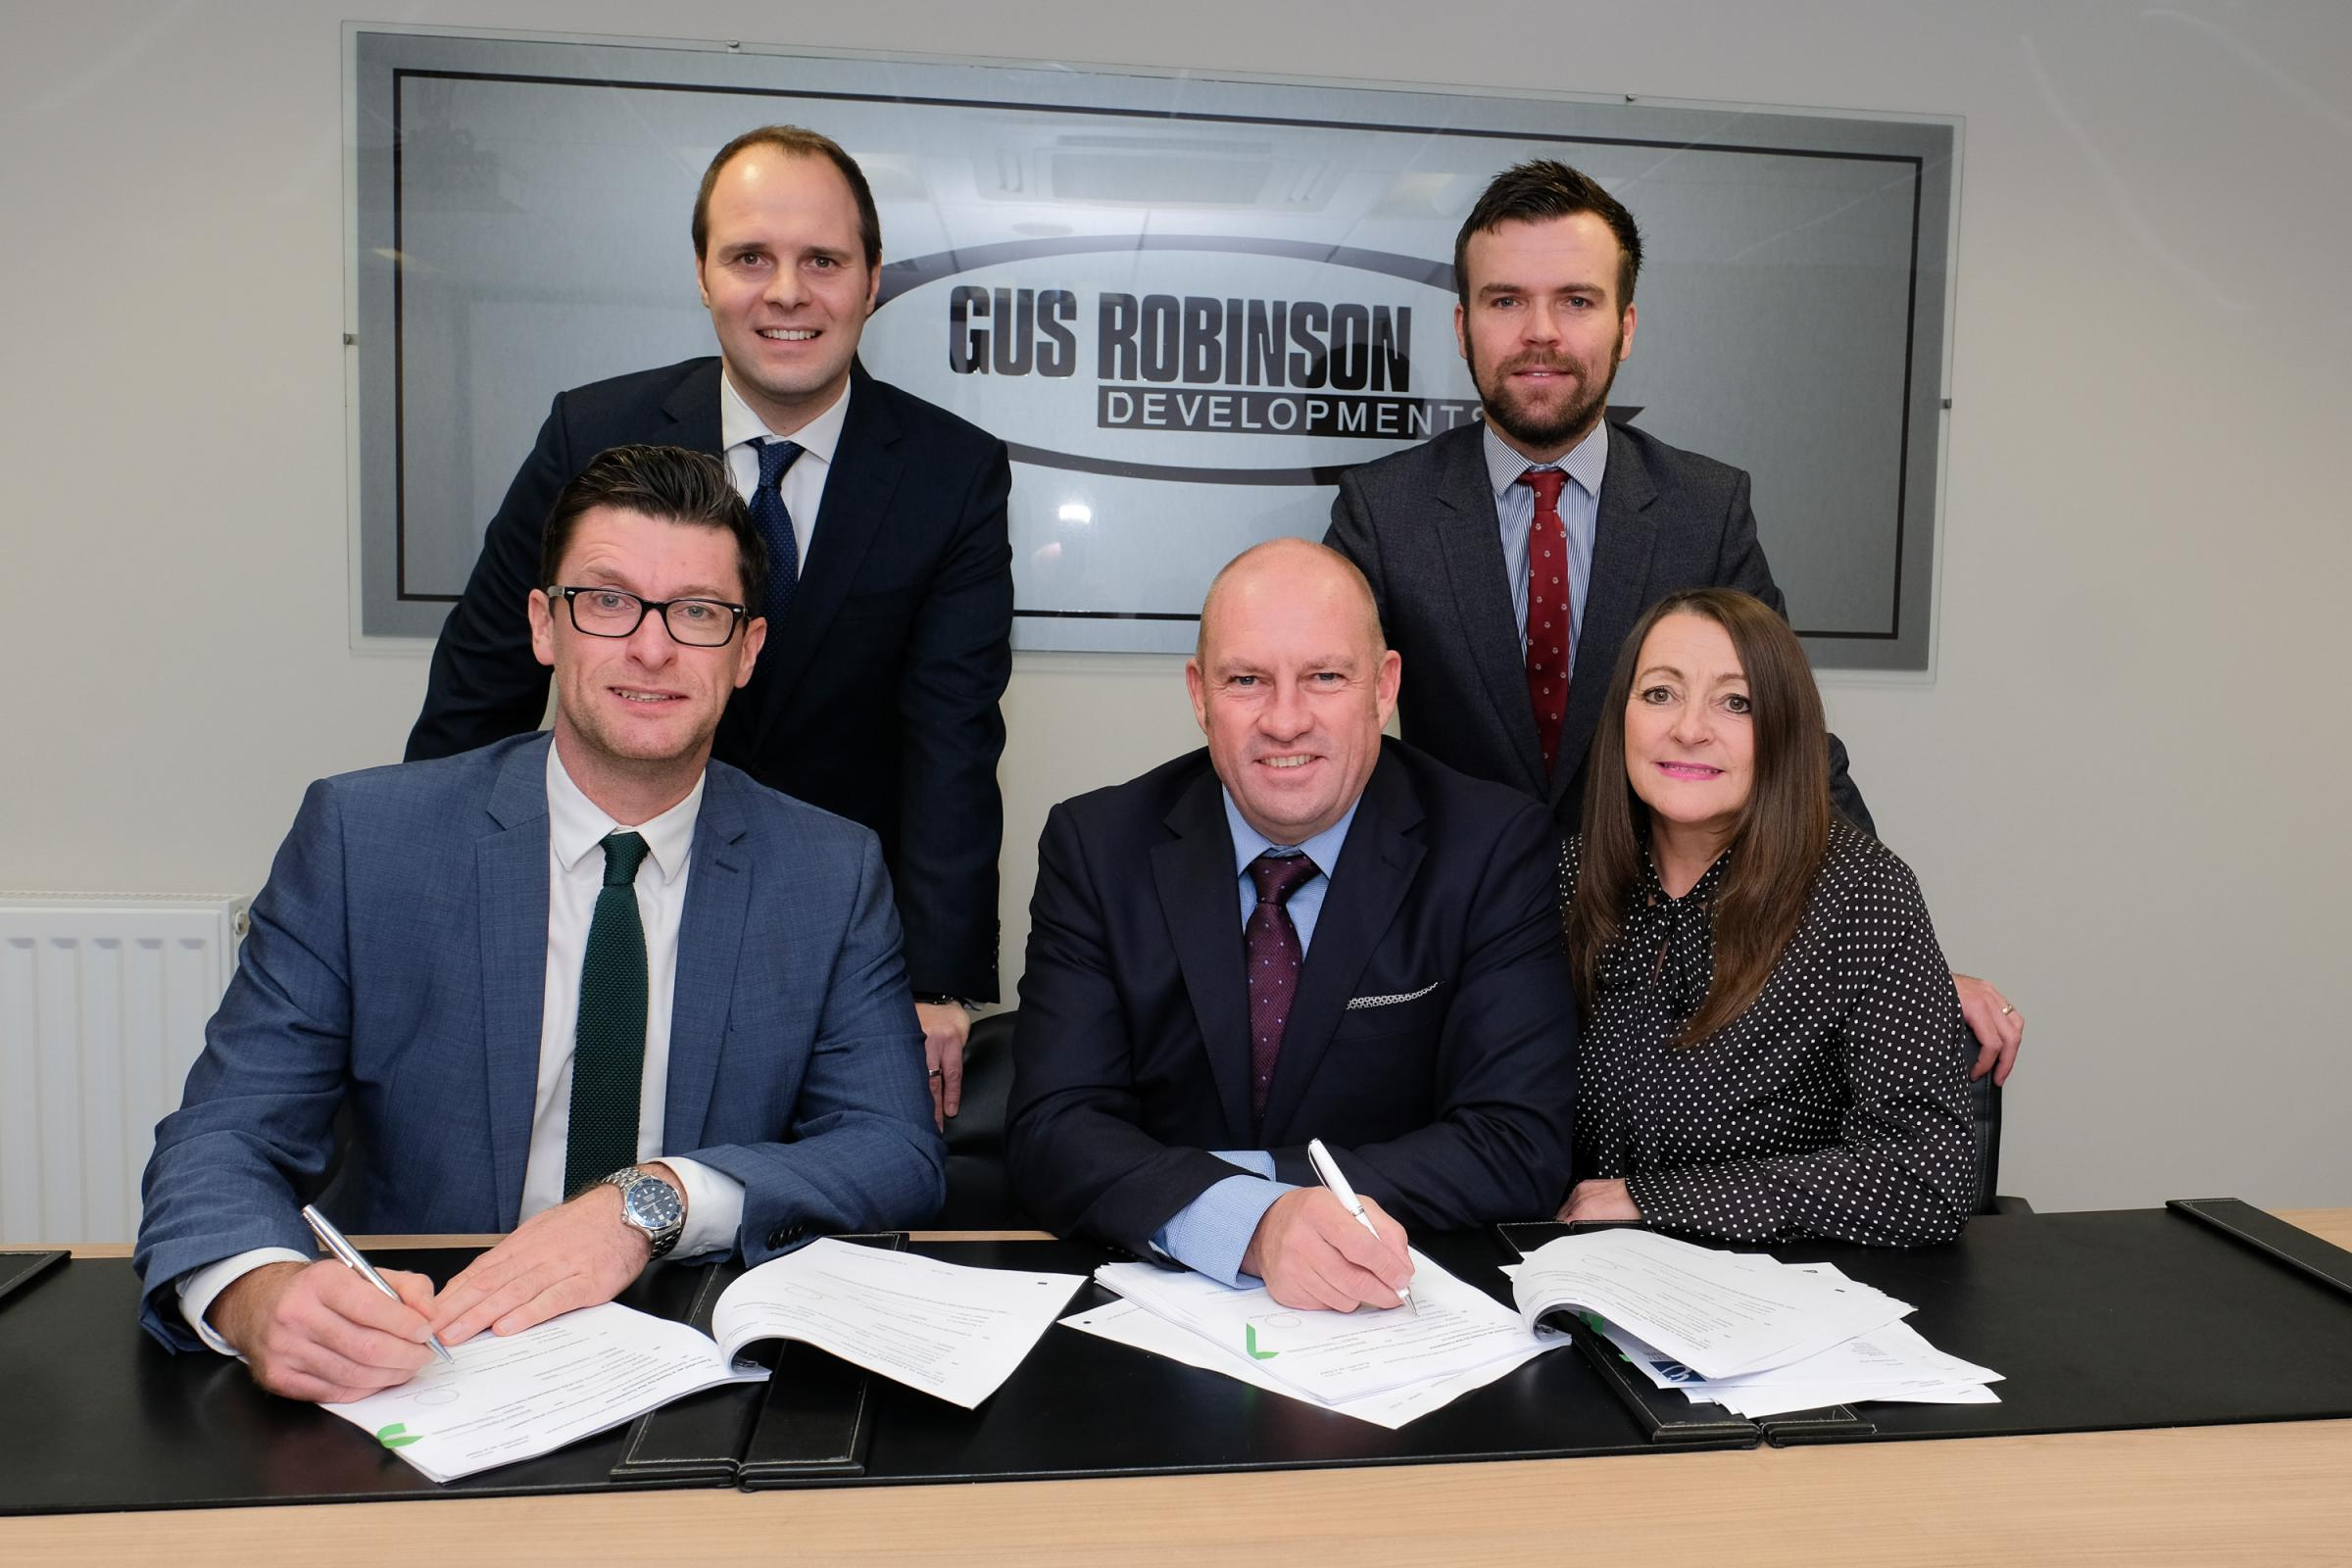 NEW SIGNING: David Nixon and Carl Swansbury from RG Corporate Finance. Front Row: Craig Taylor, of Thirteen, Stephen Bell, of Gus Robinson Developments and Jeanette Henderson, Gus Robinson Developments